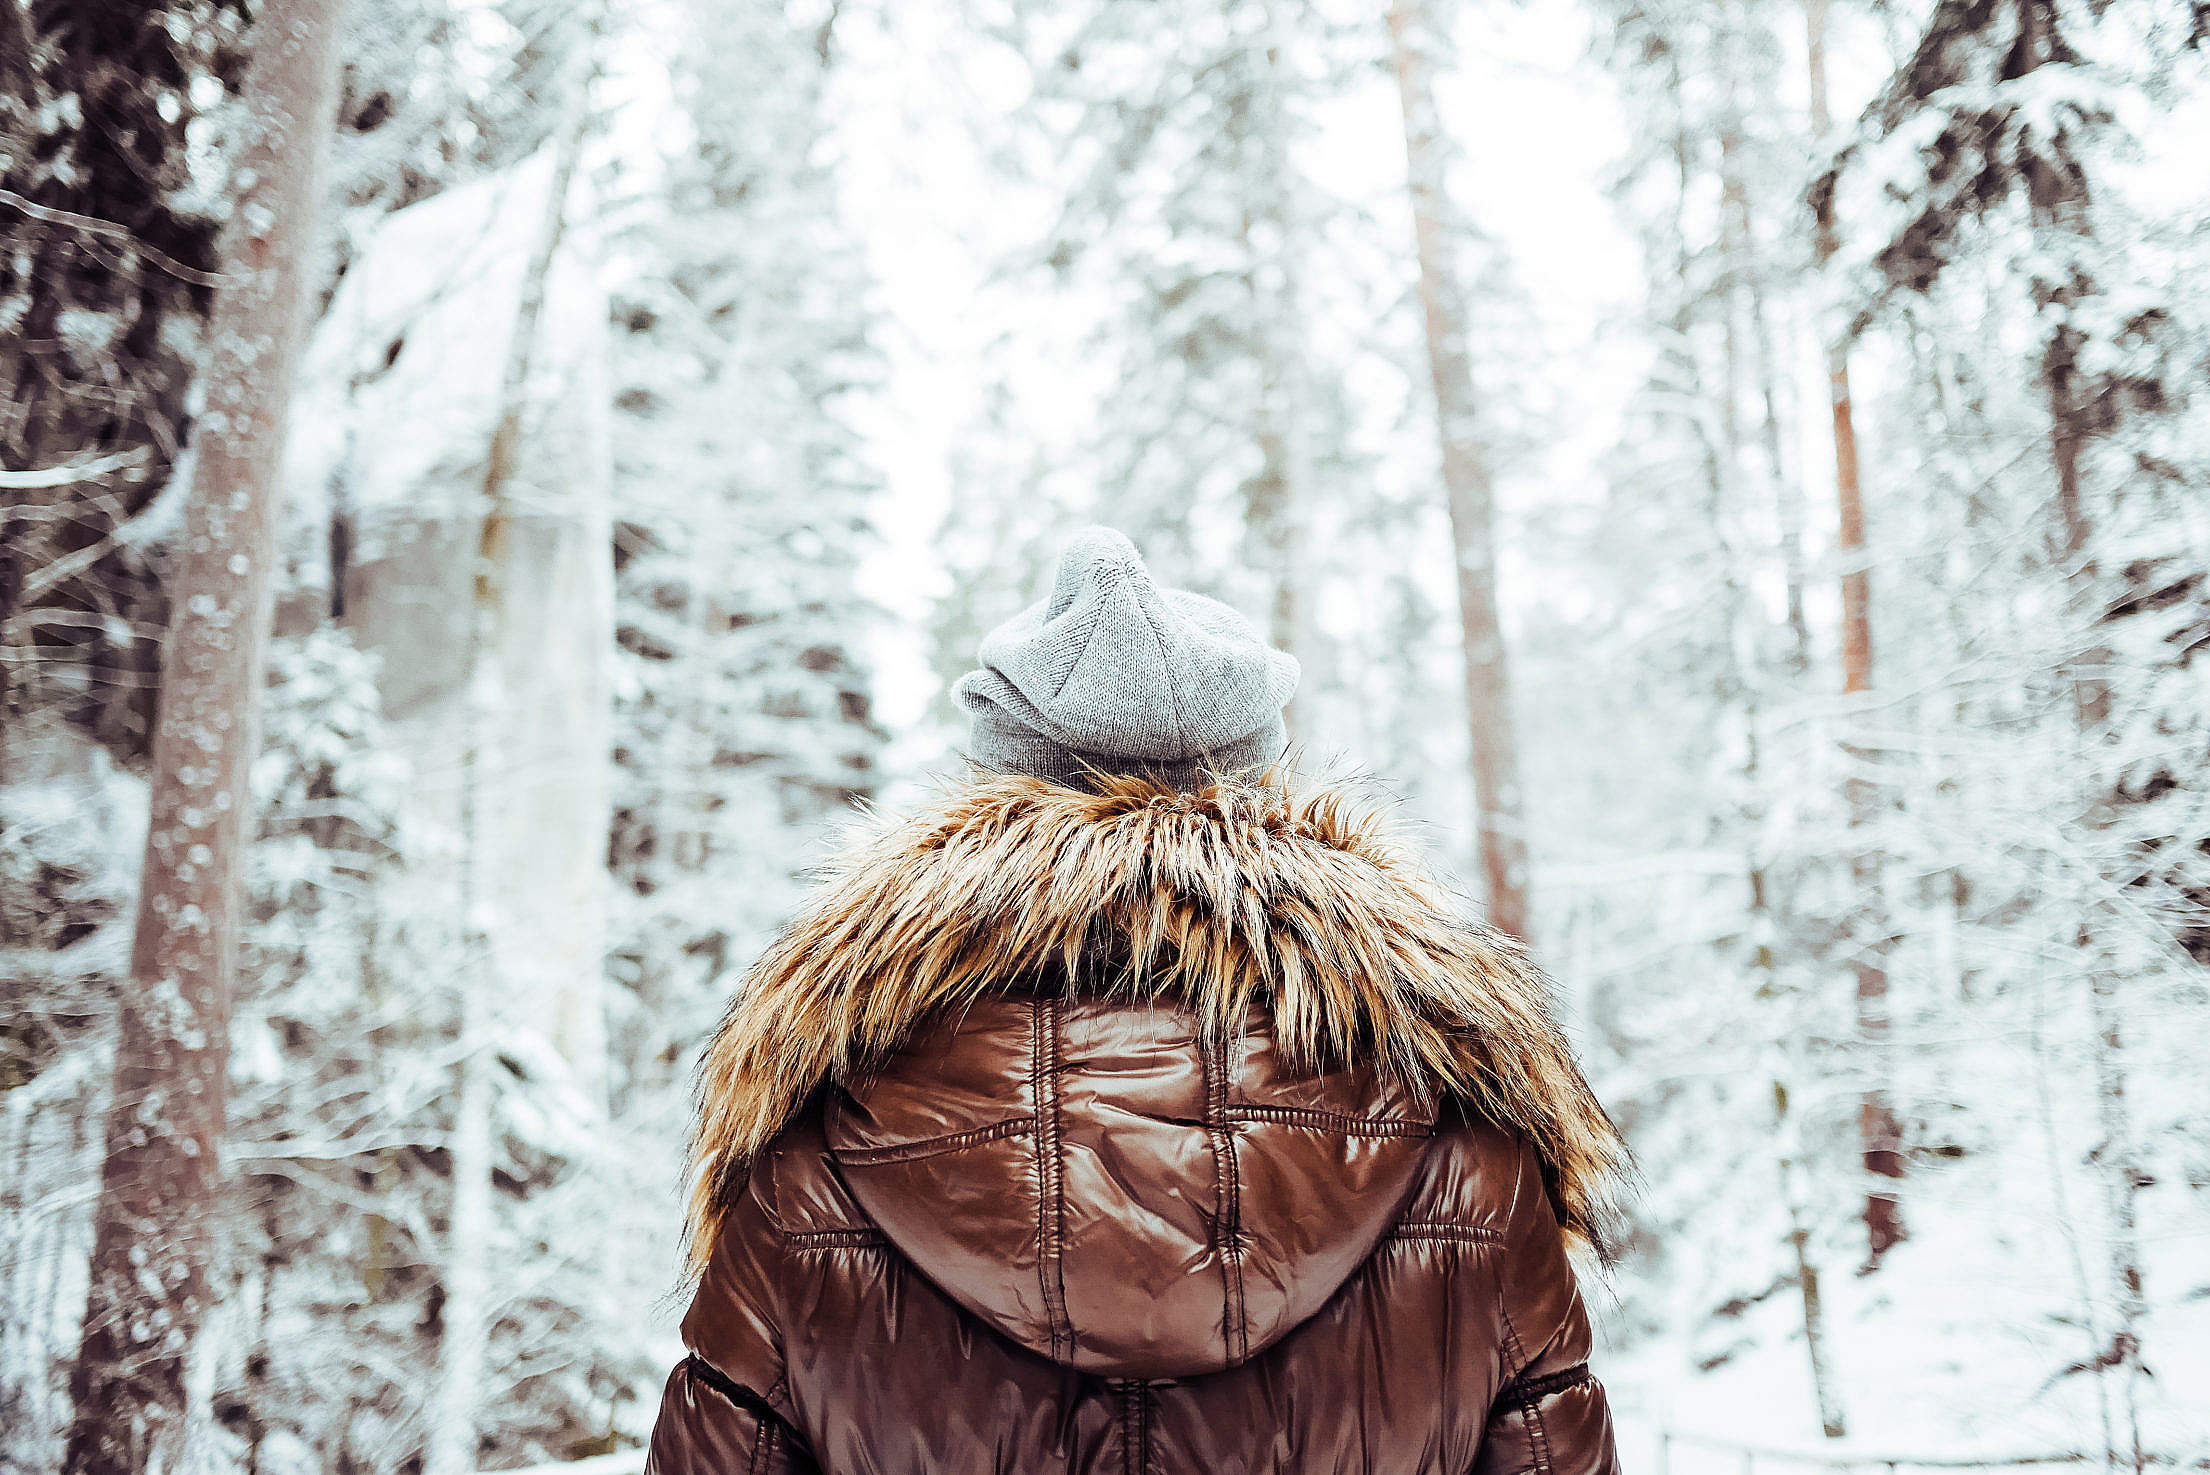 Girl in Winter Jacket Walking in Snowy Forest Free Stock Photo